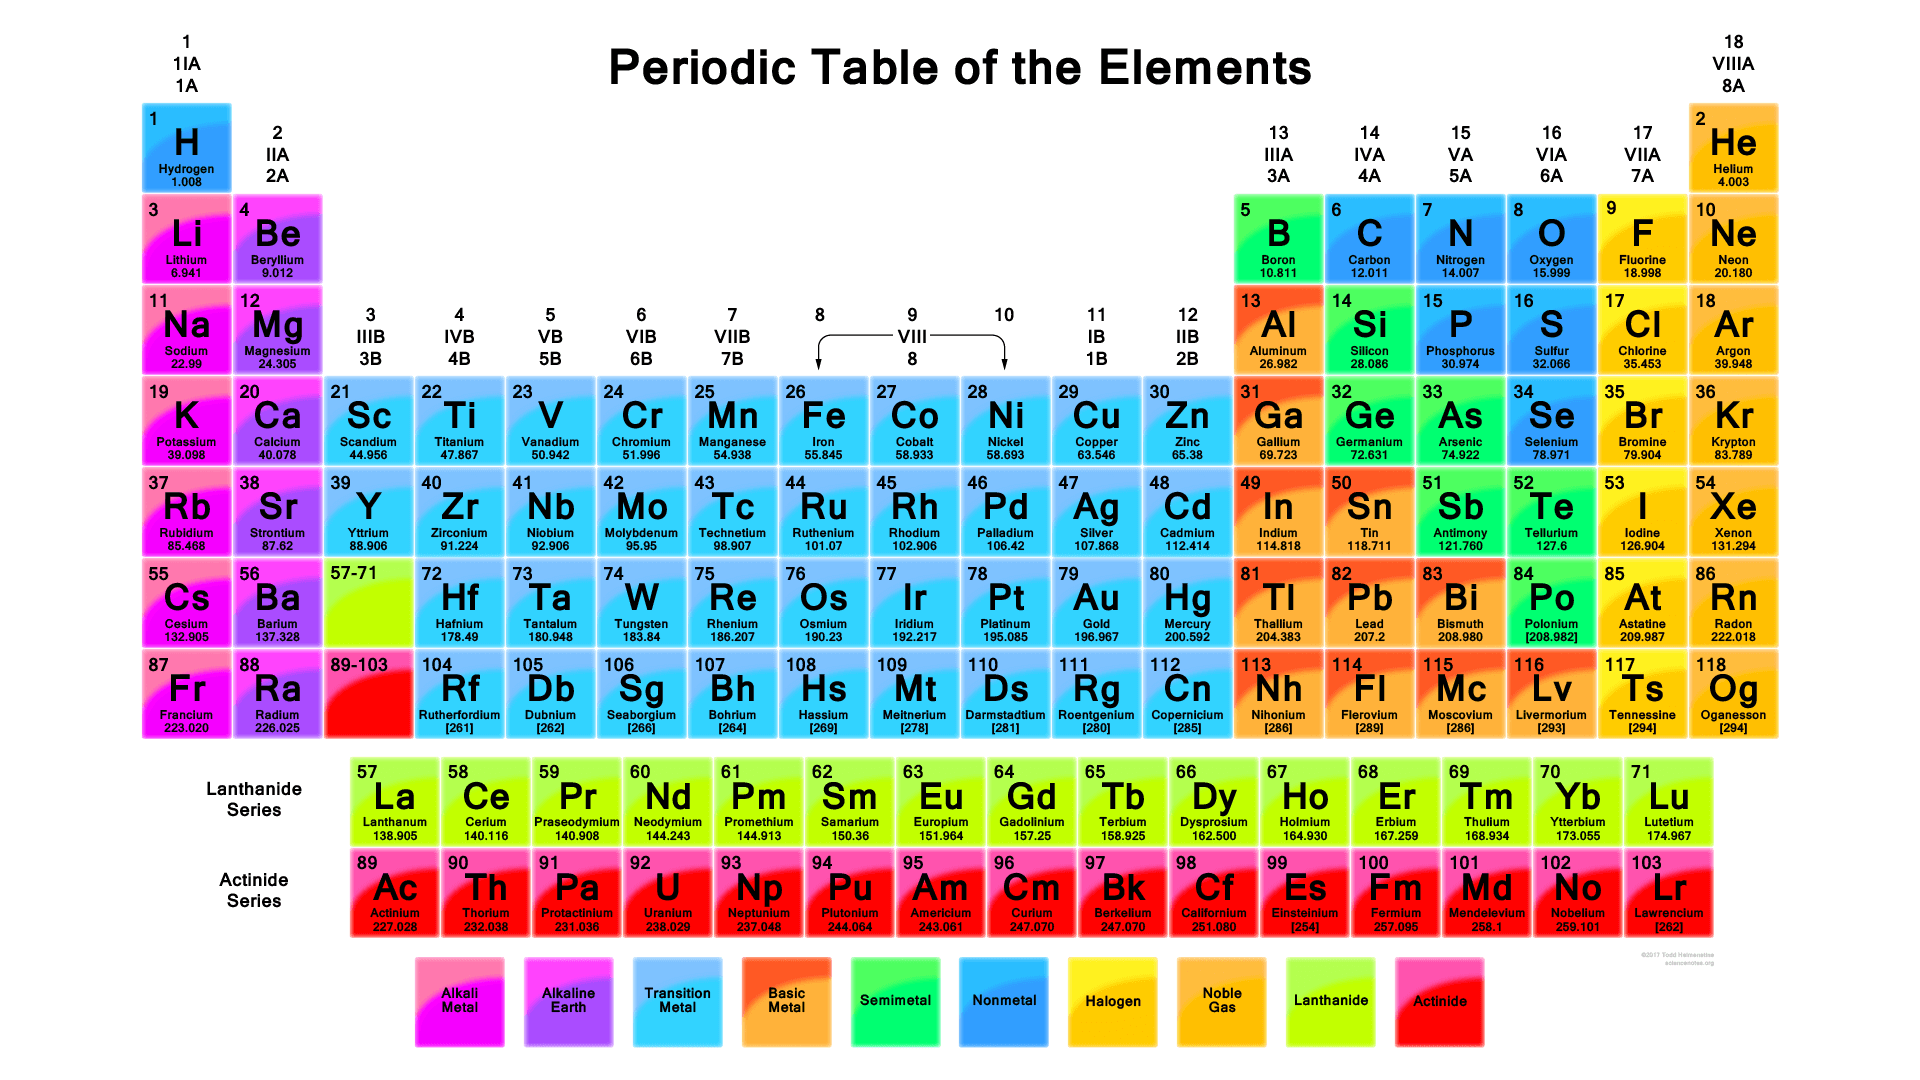 Periodic table of elements pdf bindrdnwaterefficiency periodic table of elements pdf urtaz Image collections